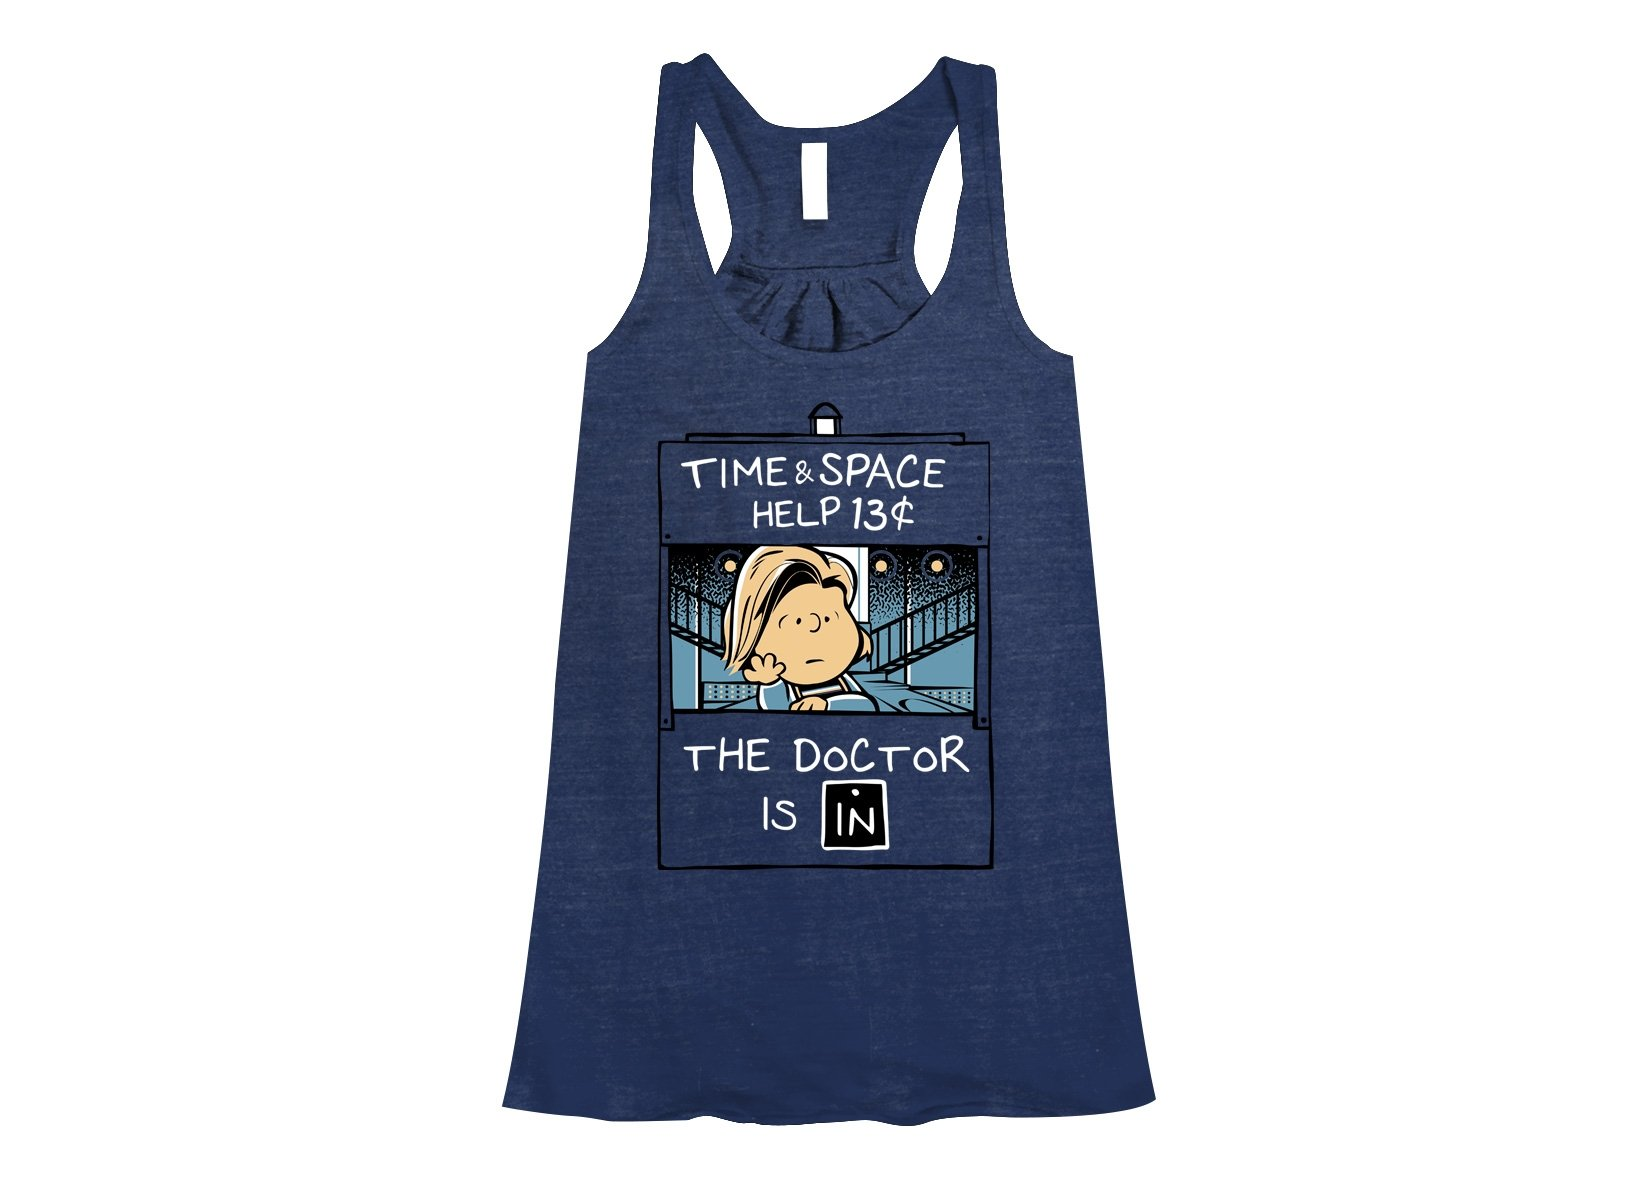 13th Doctor Is In on Womens Tanks T-Shirt